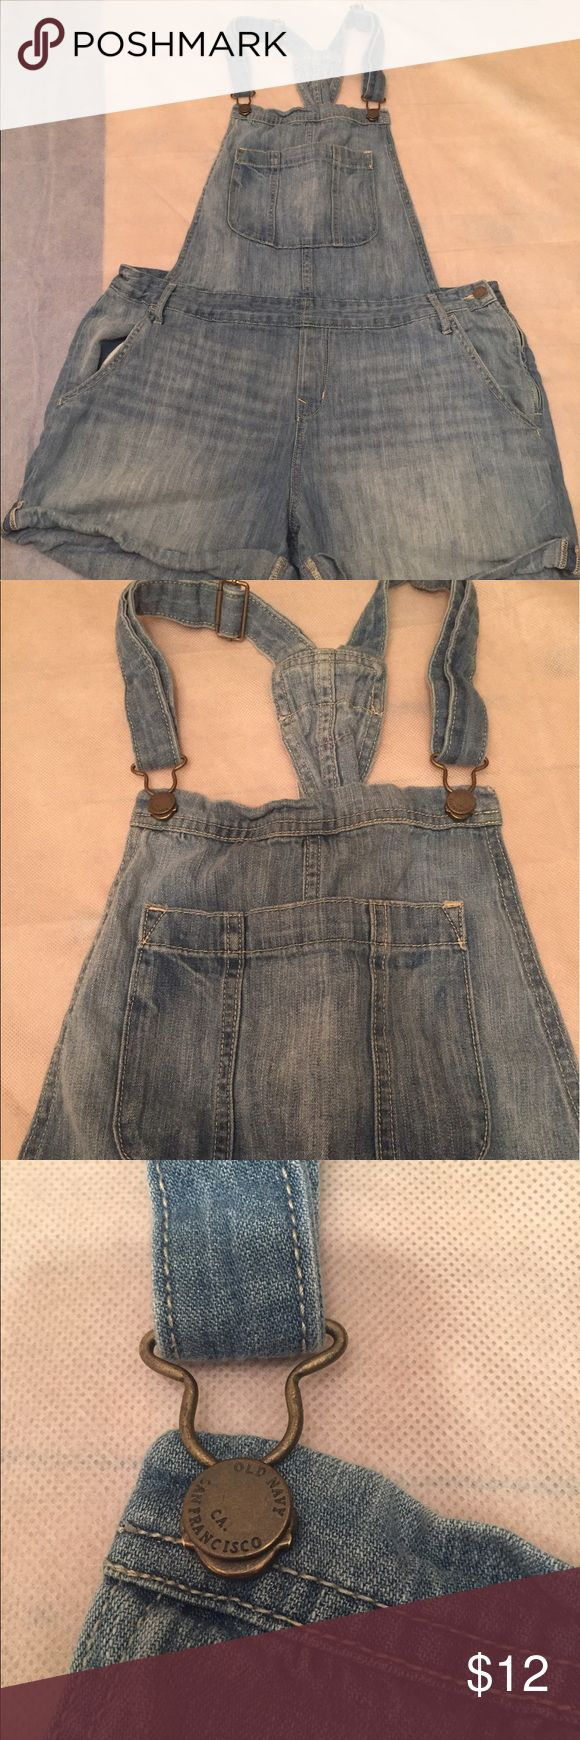 Only navy woman overall size large In excellent condition   Old navy overalls size - large   Measurement   25 inches long from shoulder to bottom   19 inches across the the waist on a flat lay    See picture for details Old Navy Shorts